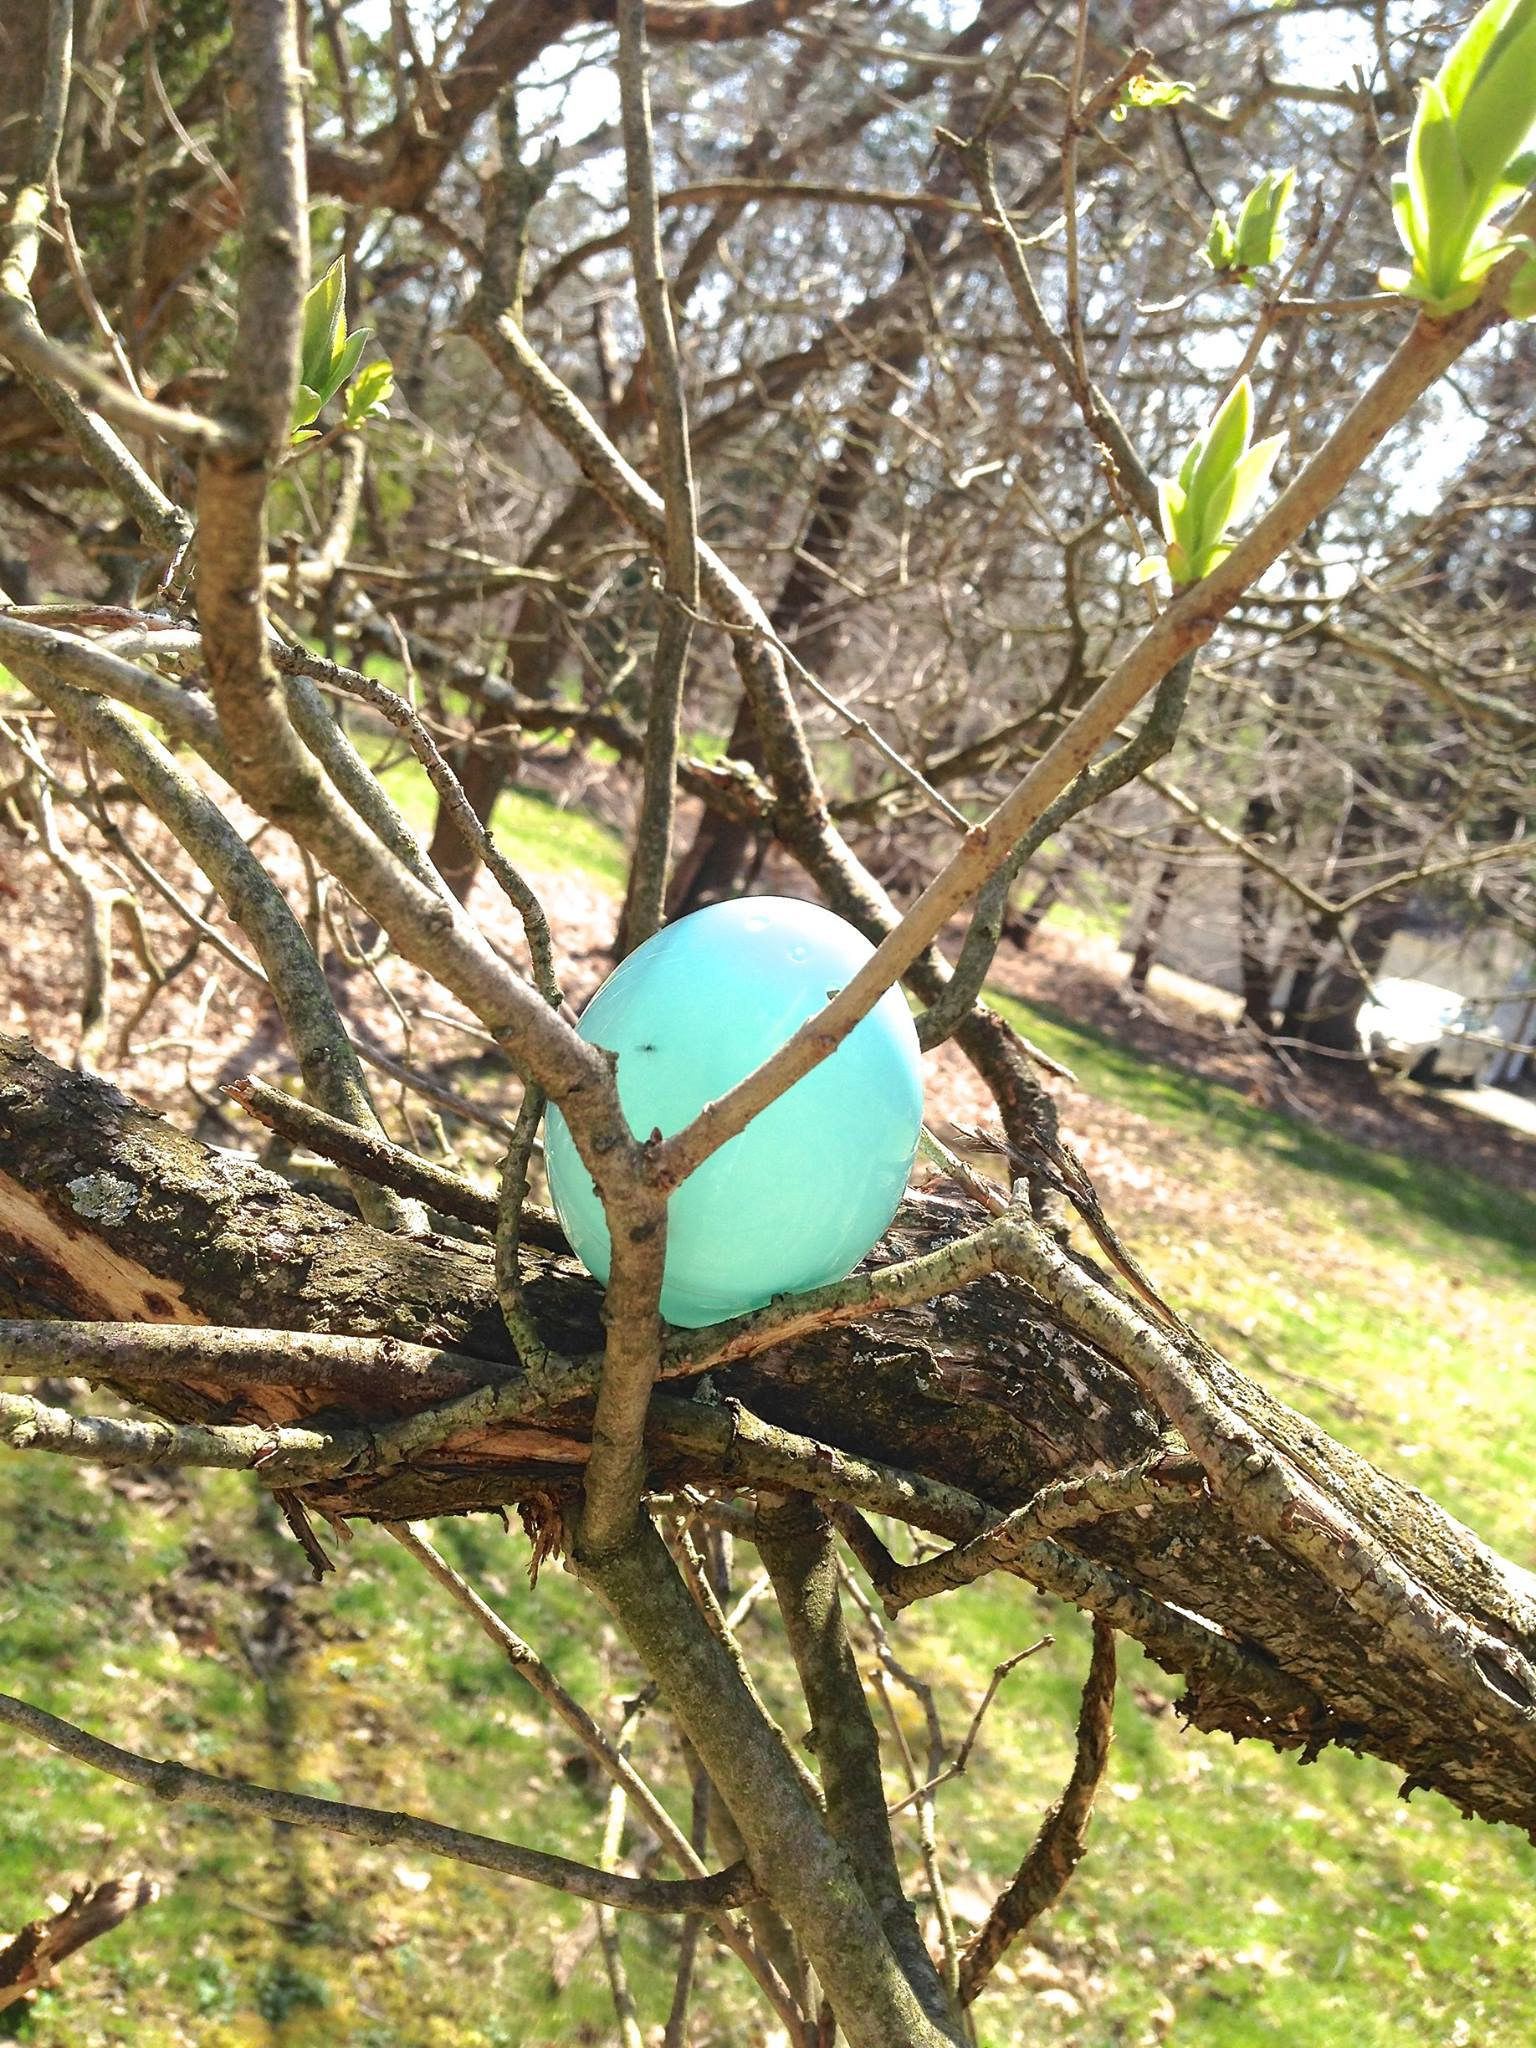 Easter egg hunt @diyshowoff